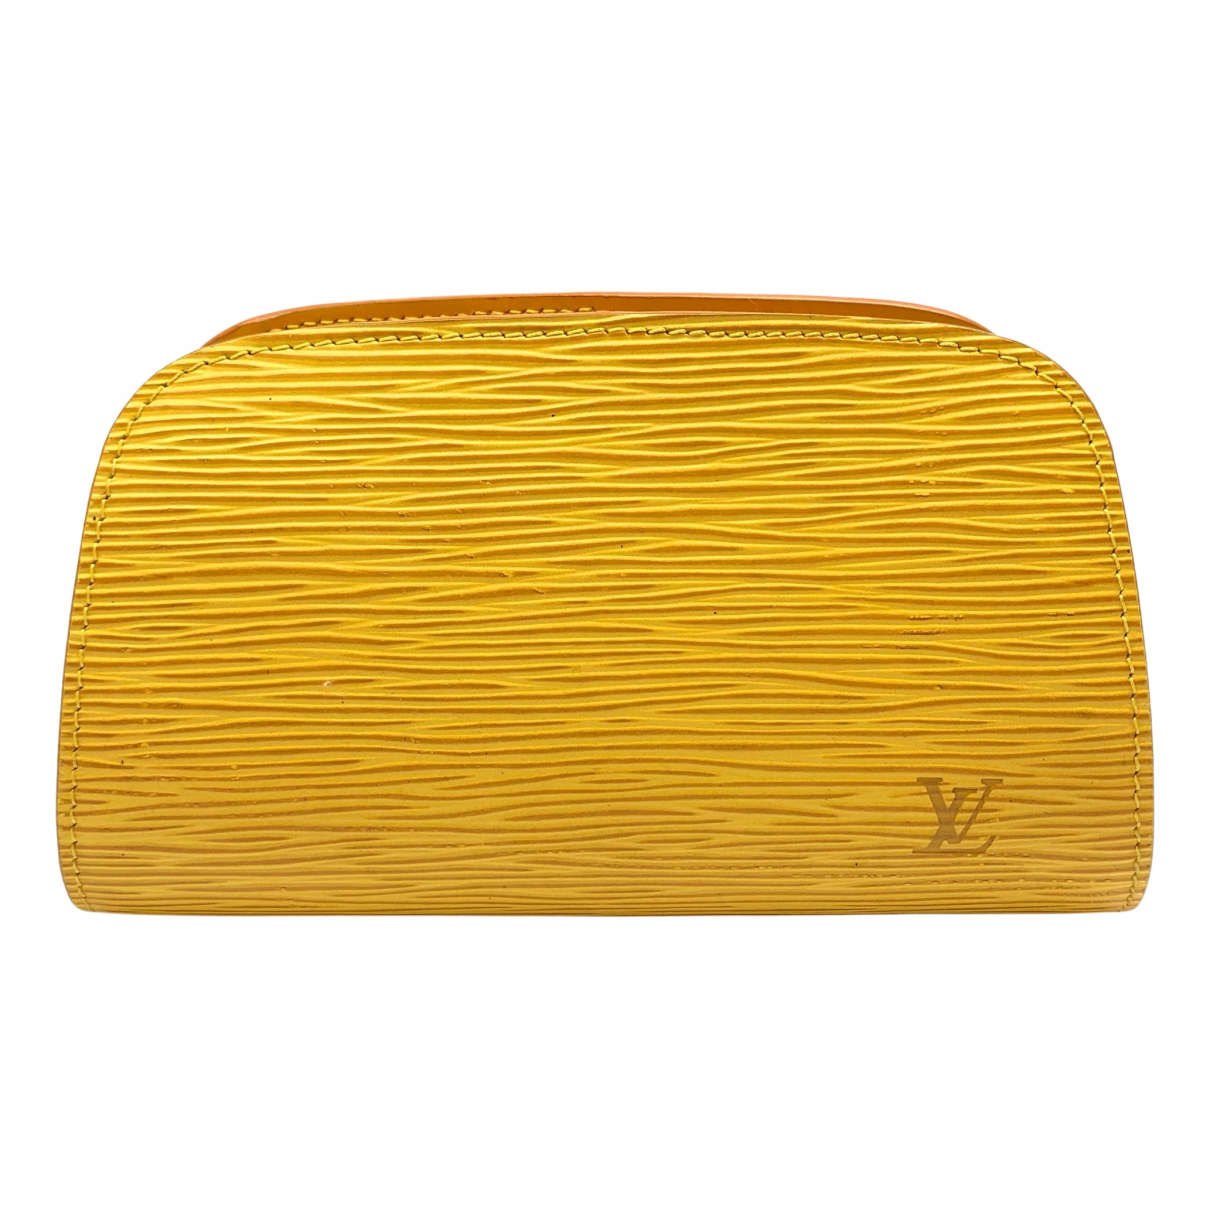 Louis Vuitton N Yellow Leather Travel bag for Women N